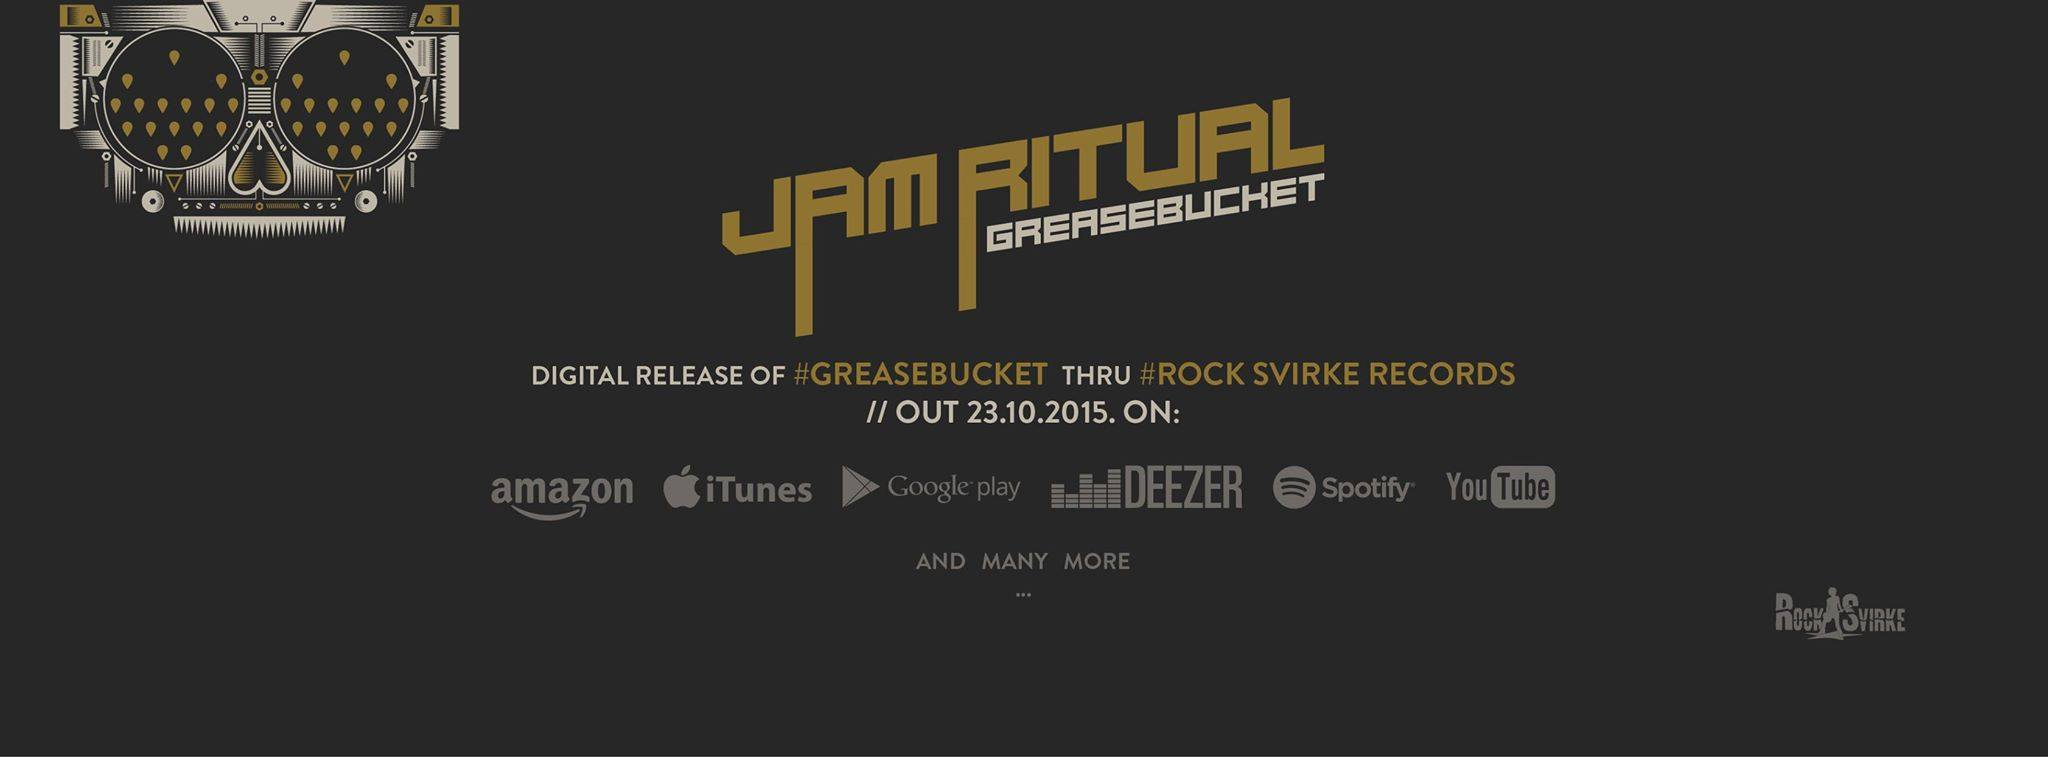 Jam Ritual - Greasebucket